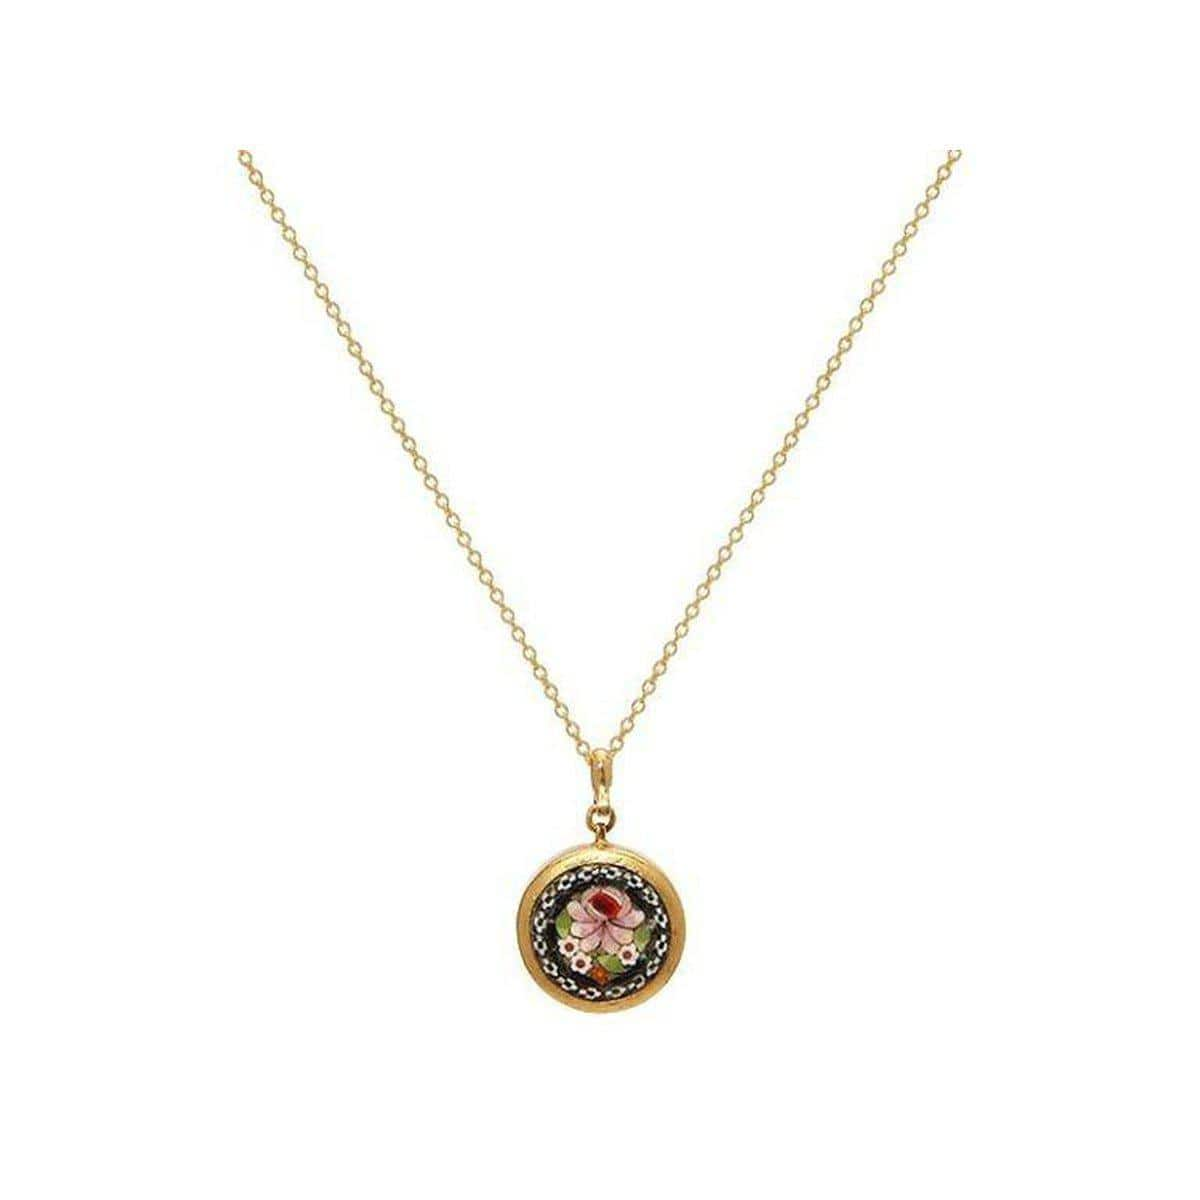 Antiquitites 24K Gold Mosaic Necklace -CHN-U23155-MZ-GURHAN-Renee Taylor Gallery